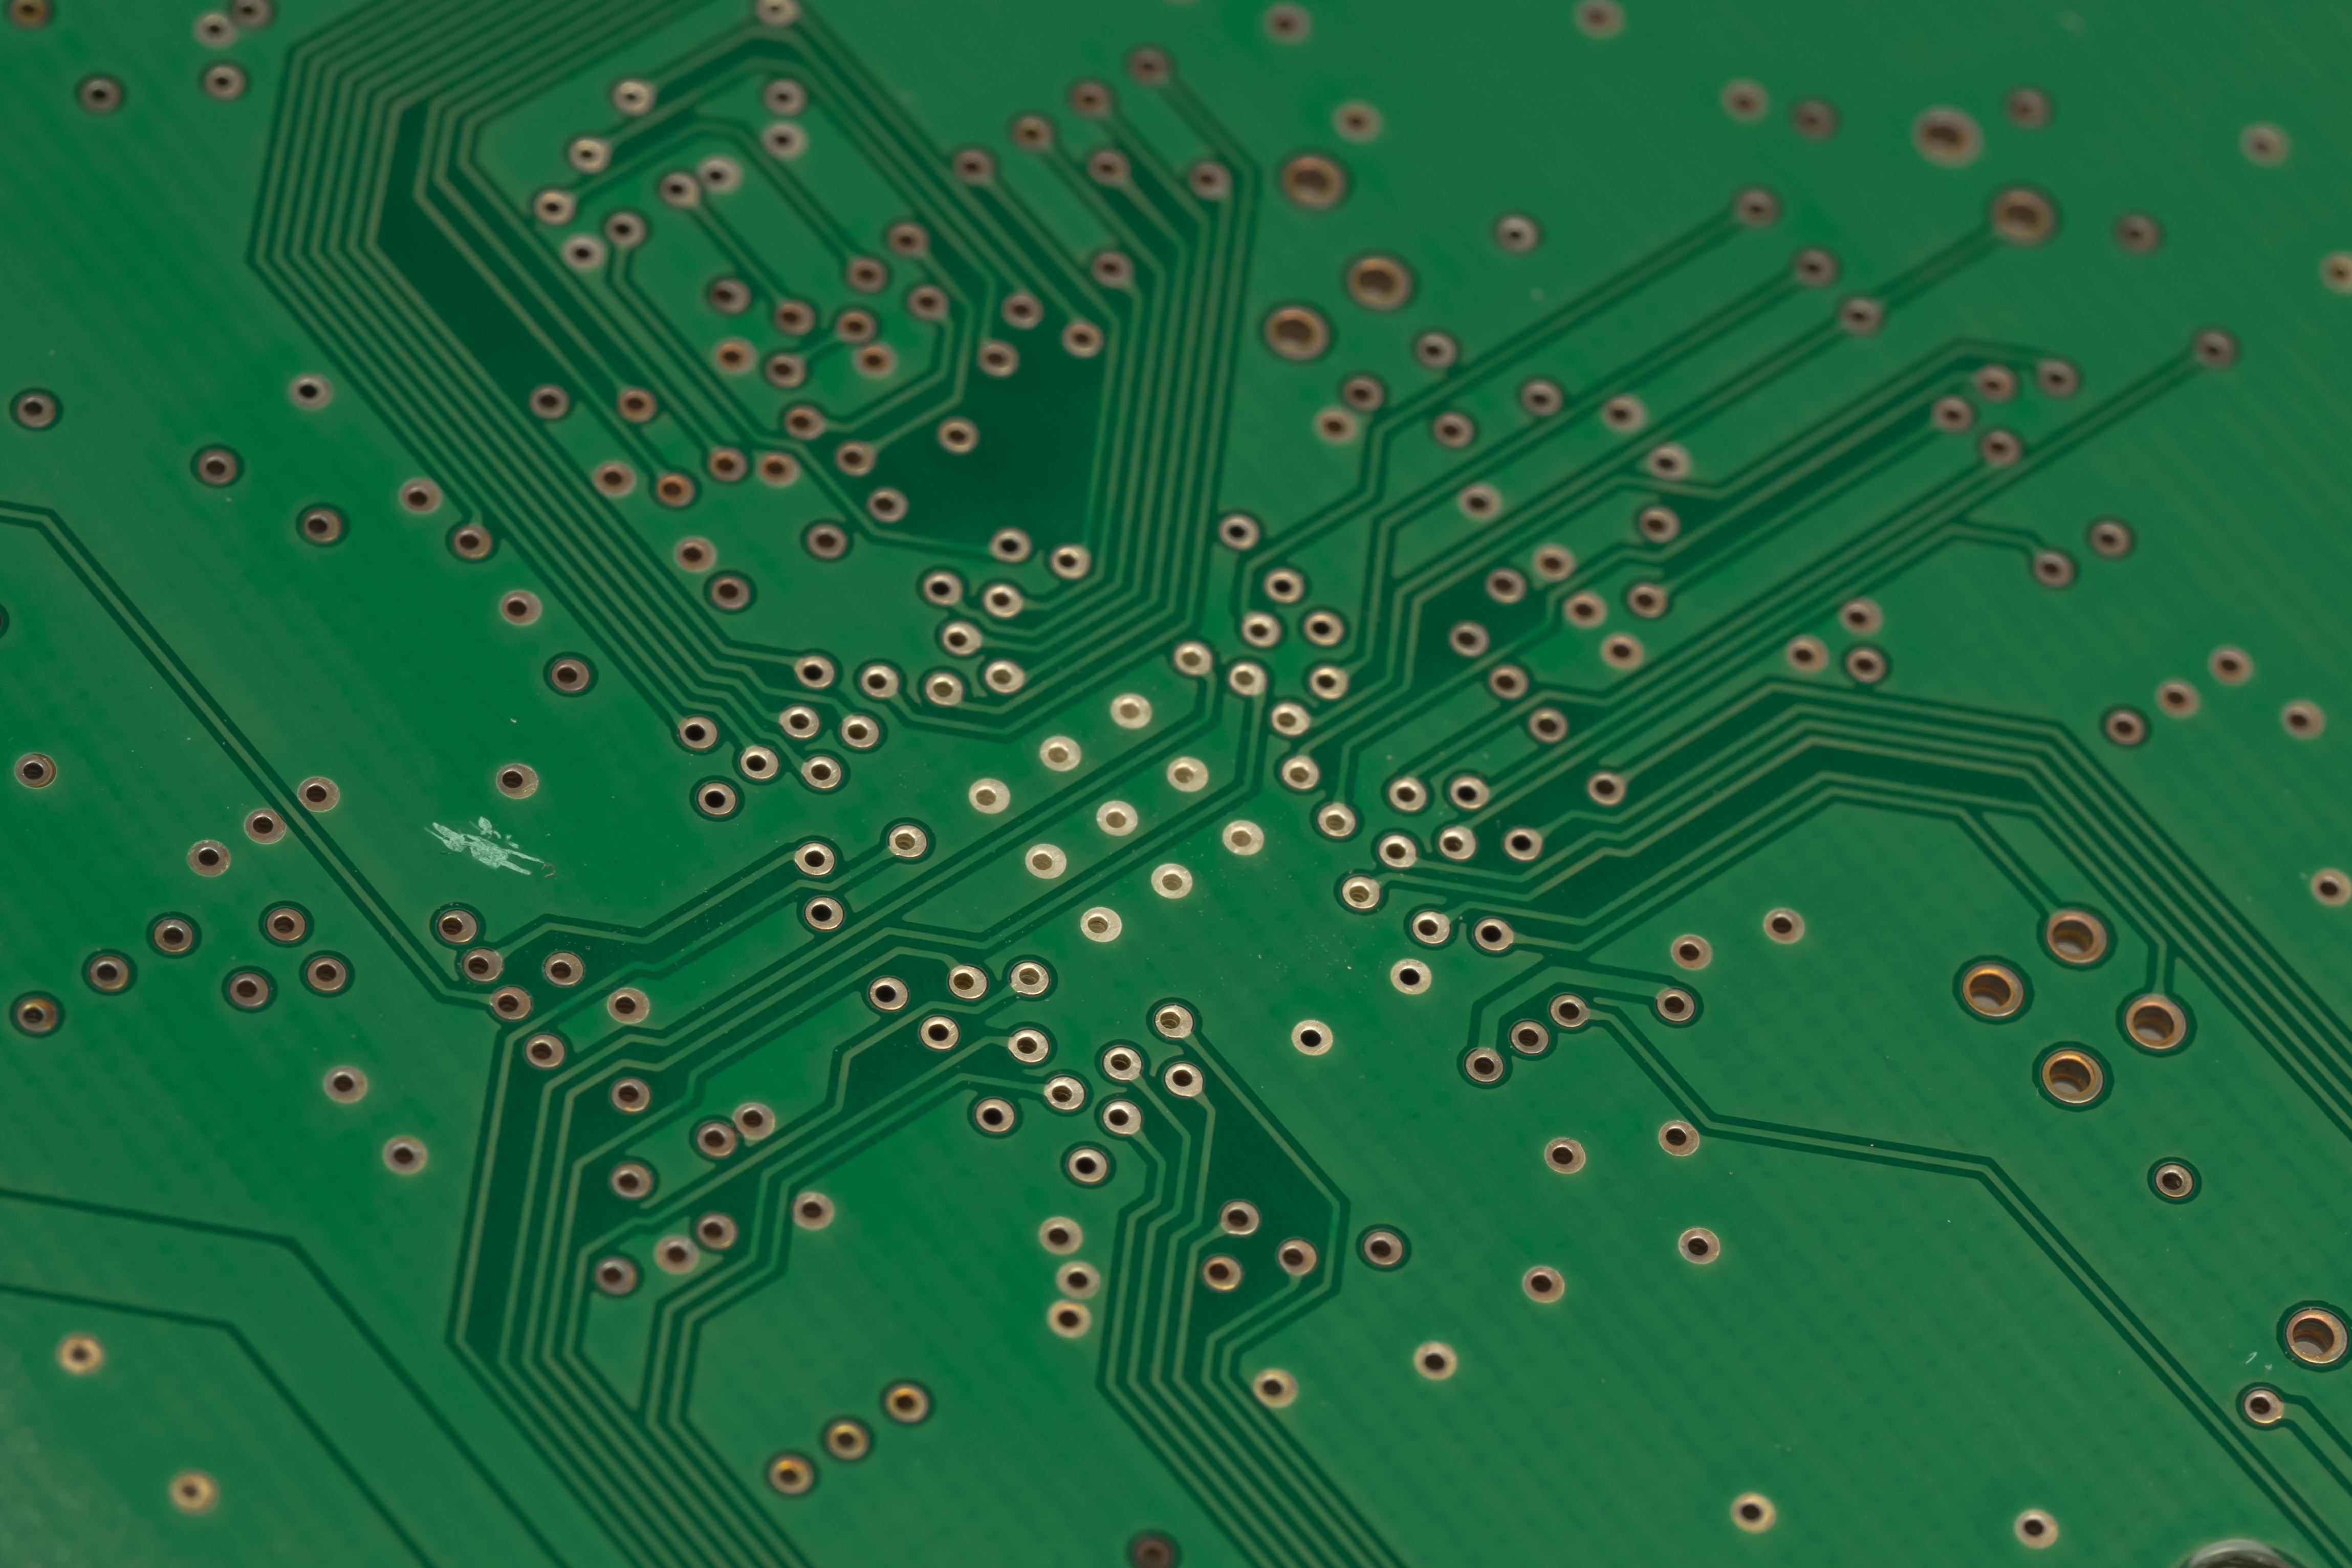 Free Stock Photo Of Board Chip Circuits Printed Circuit Images Image 7251734